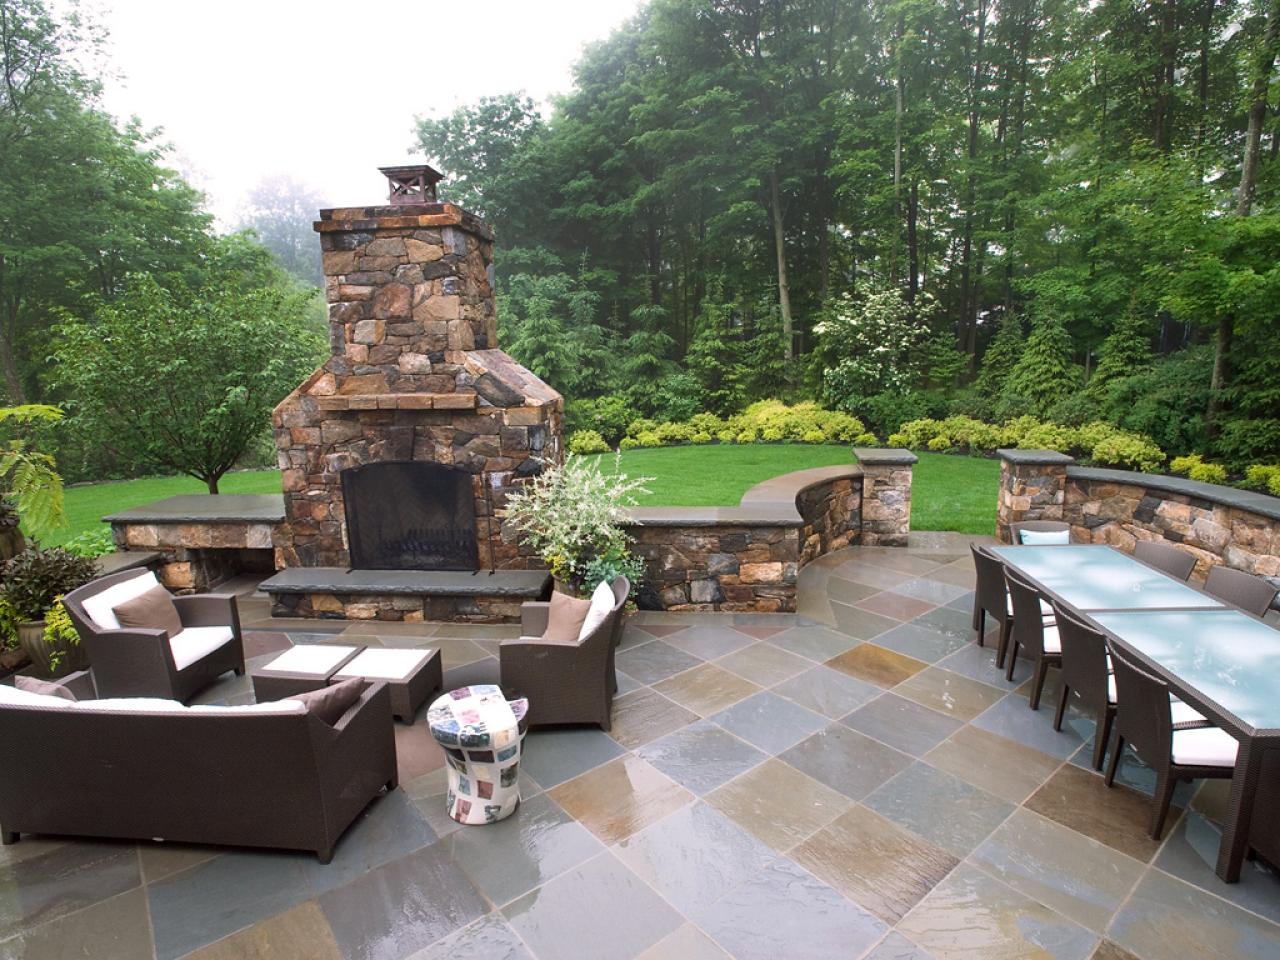 Patio Design & Installation-Fort Worth TX Professional Landscapers & Outdoor Living Designs-We offer Landscape Design, Outdoor Patios & Pergolas, Outdoor Living Spaces, Stonescapes, Residential & Commercial Landscaping, Irrigation Installation & Repairs, Drainage Systems, Landscape Lighting, Outdoor Living Spaces, Tree Service, Lawn Service, and more.